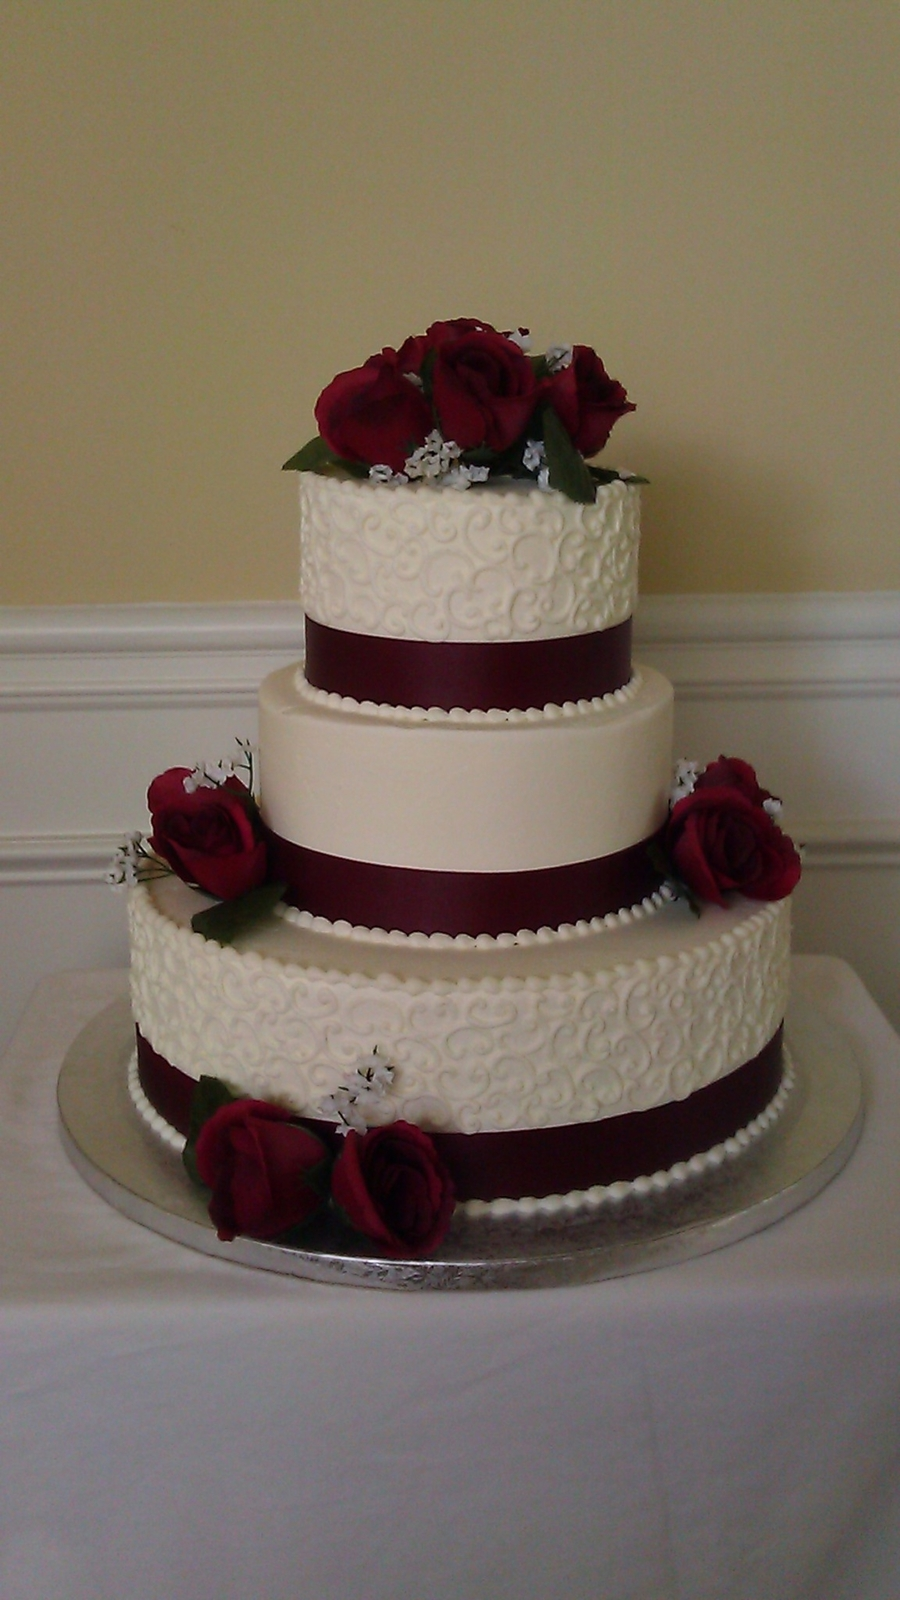 Chocolate Cake With Chocolate Roses